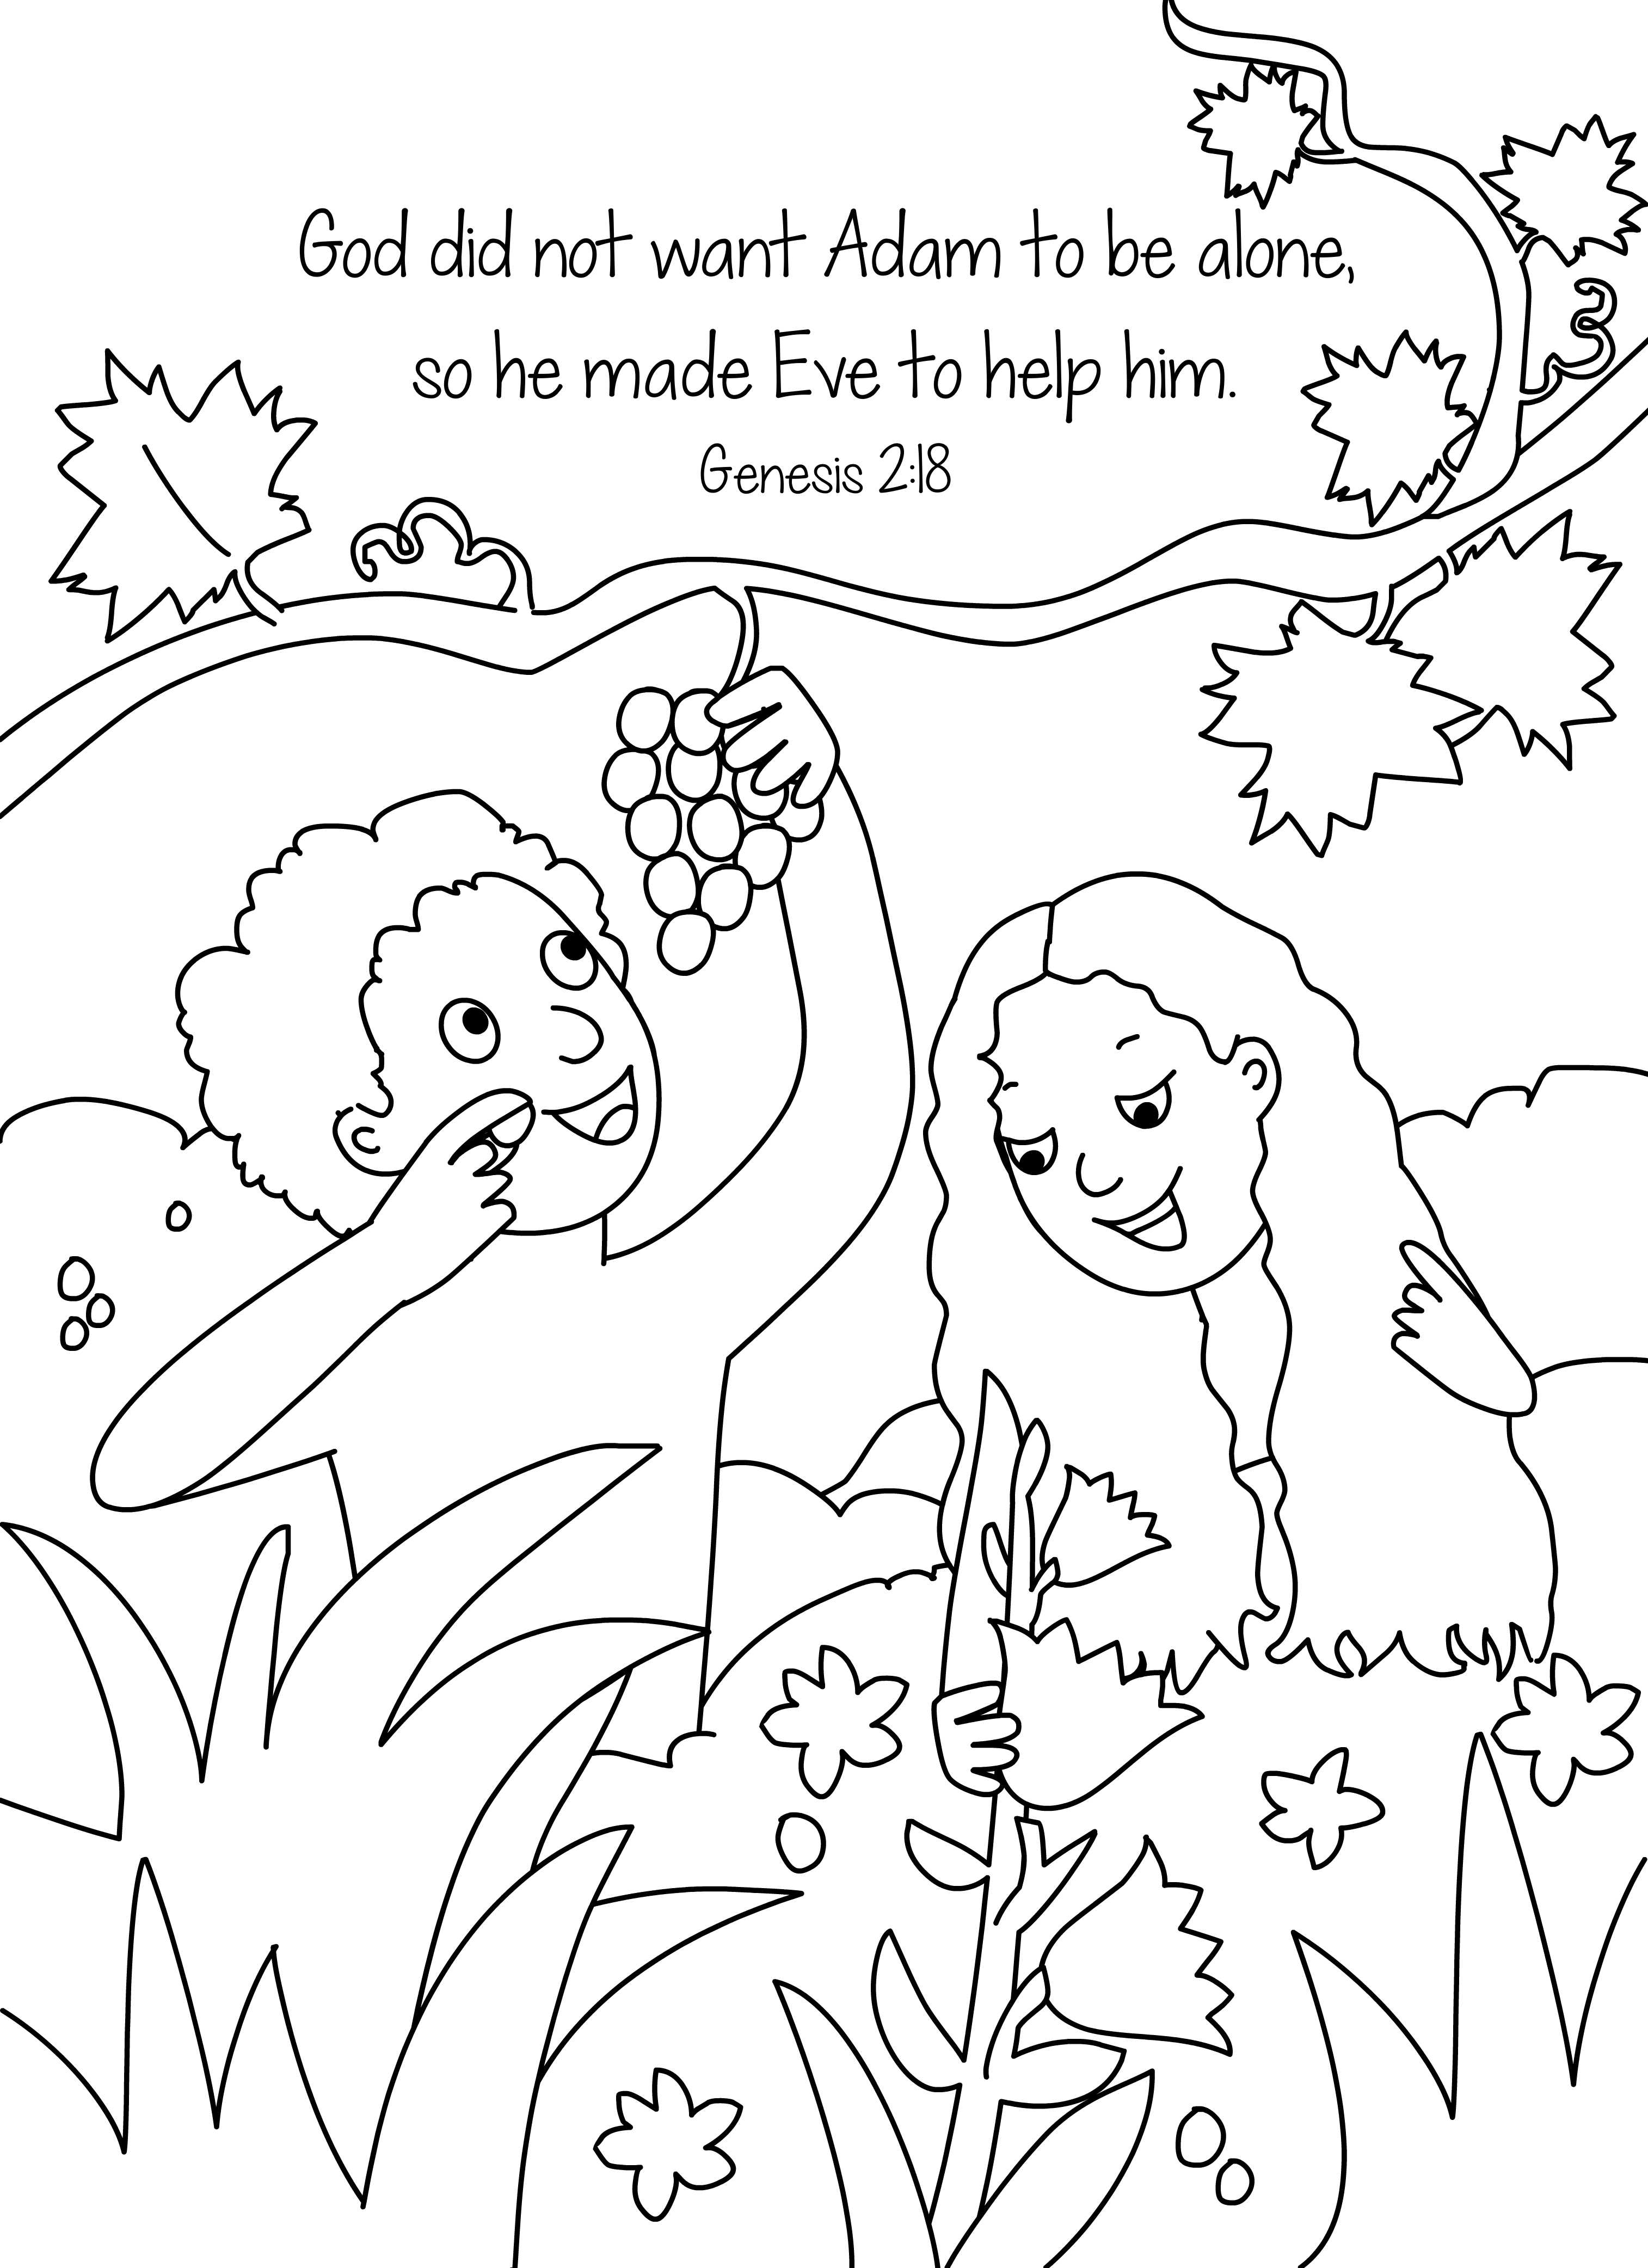 Adam and Eve Coloring Pages  Collection 10p - Save it to your computer